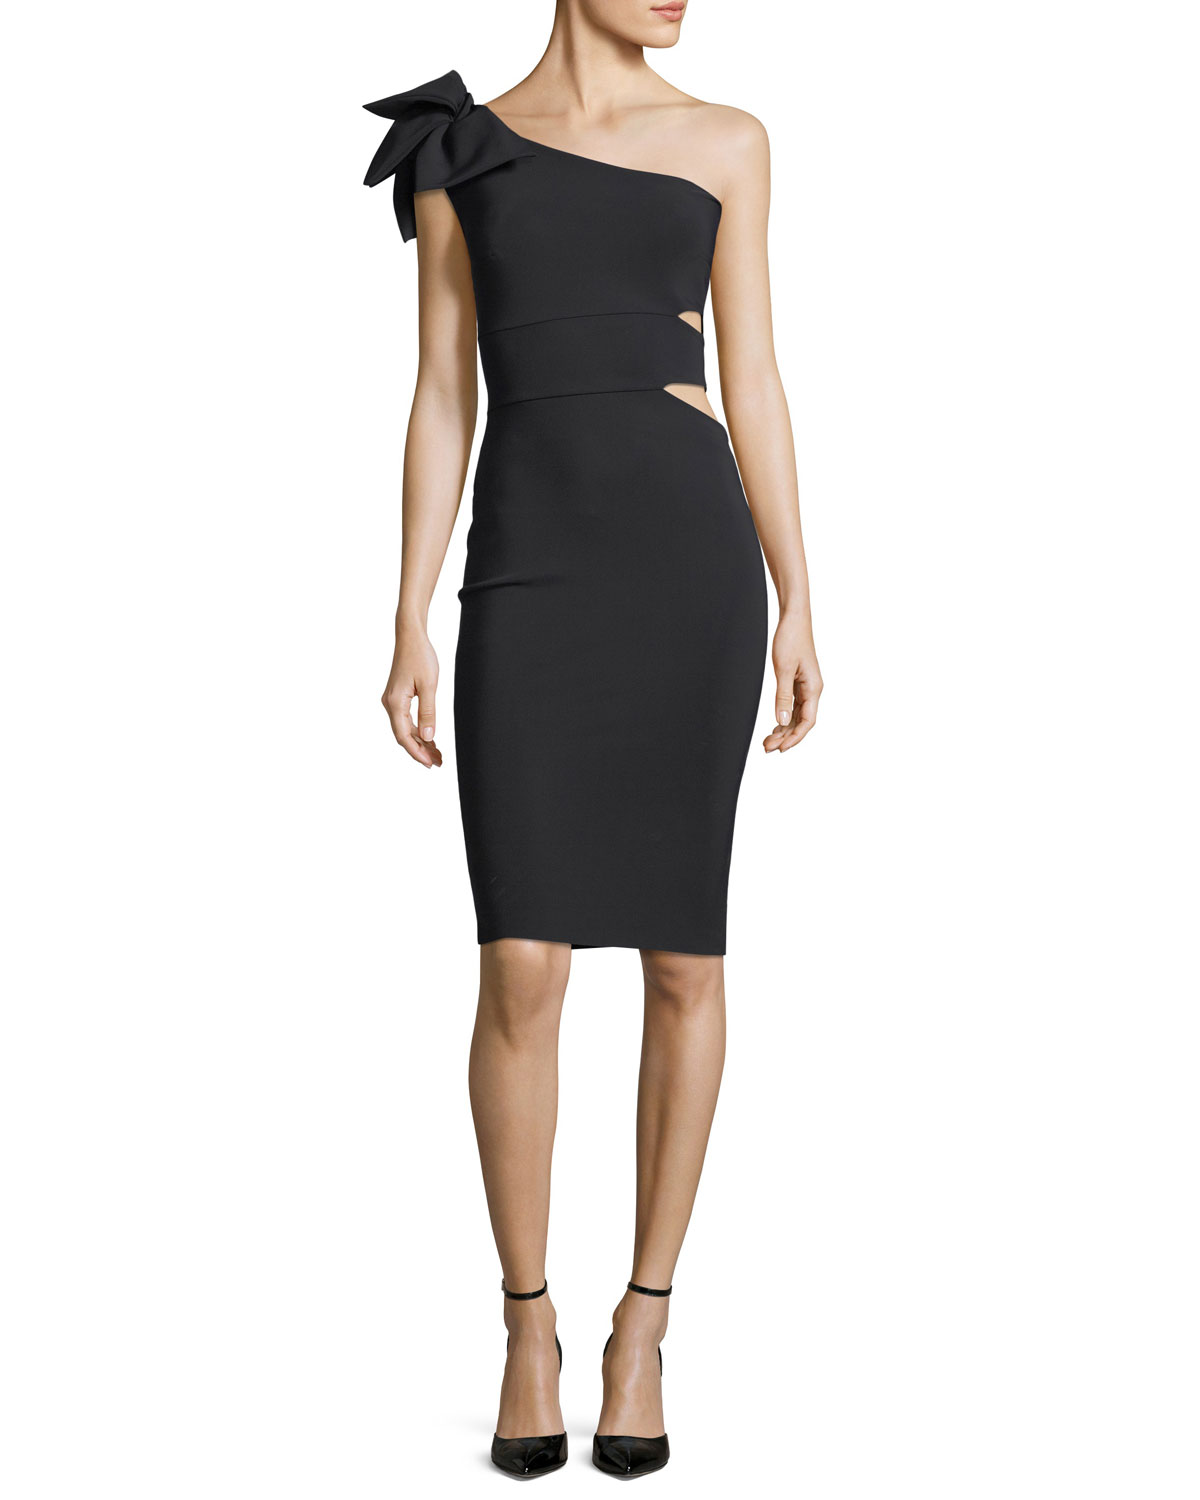 0c11b2a6 Chiara Boni La Petite Robe Tashline One-Shoulder Bow Cutout Cocktail Dress